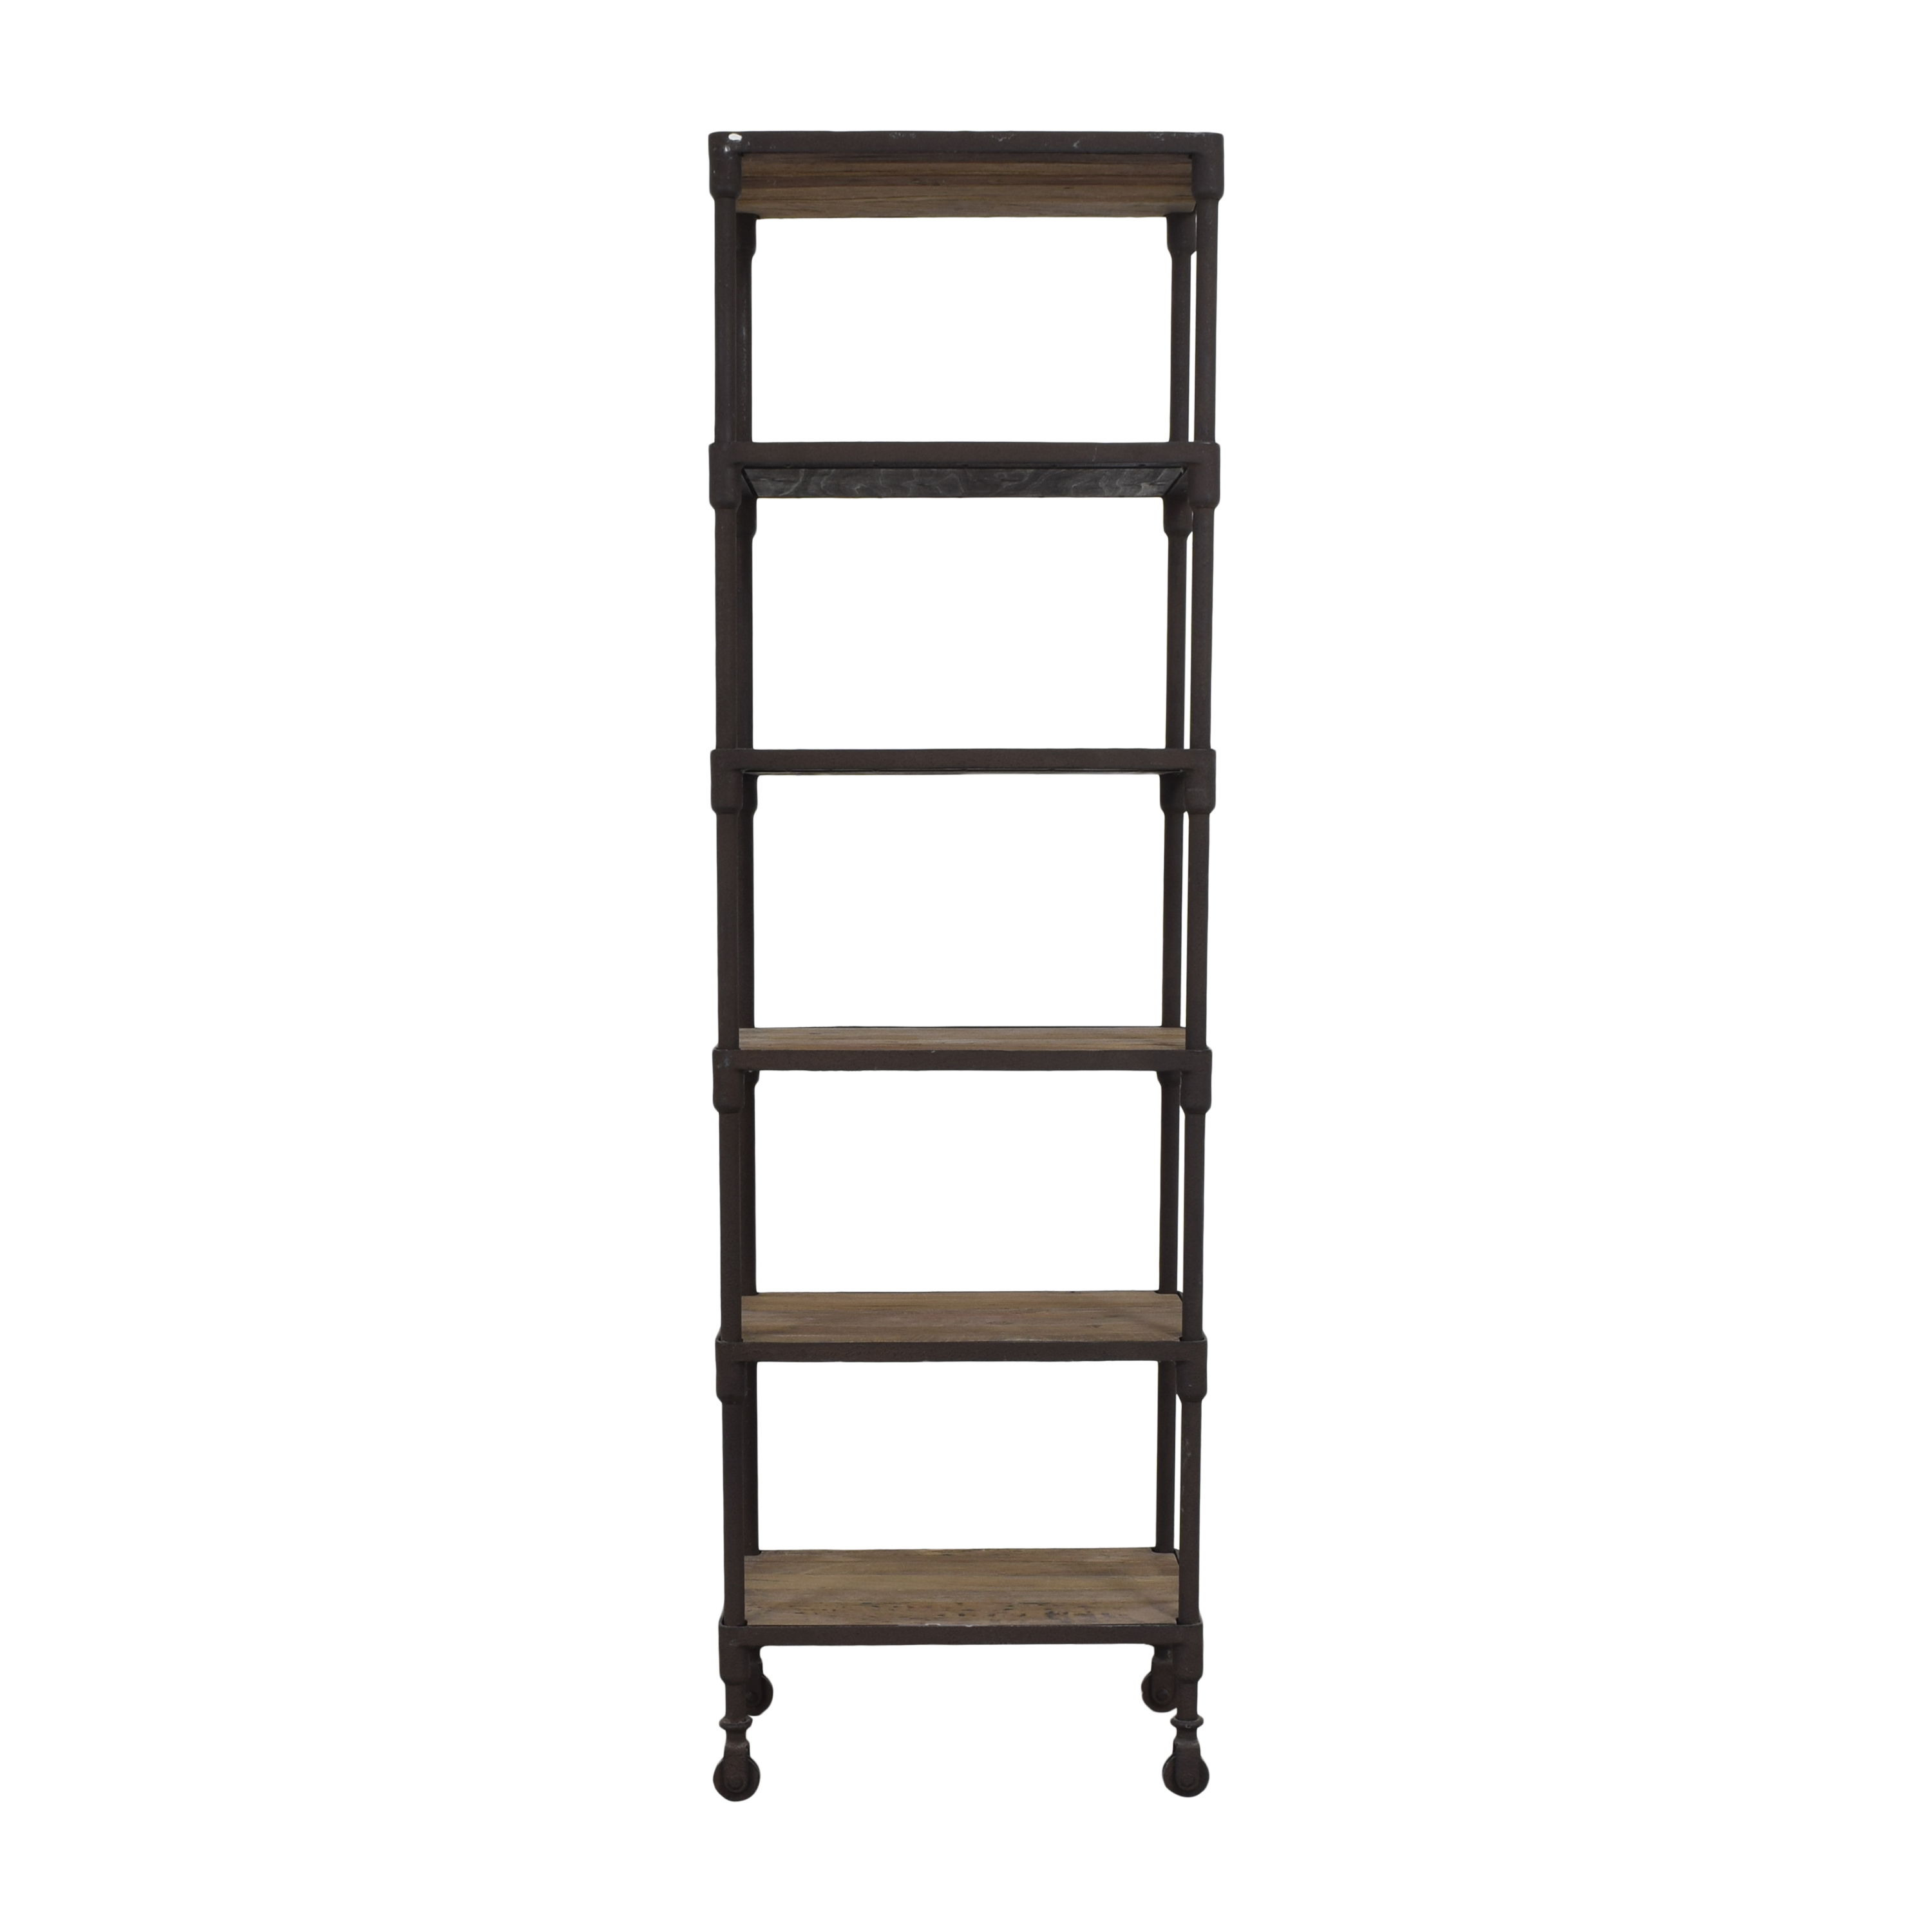 Restoration Hardware Restoration Hardware Dutch Industrial Tower ct